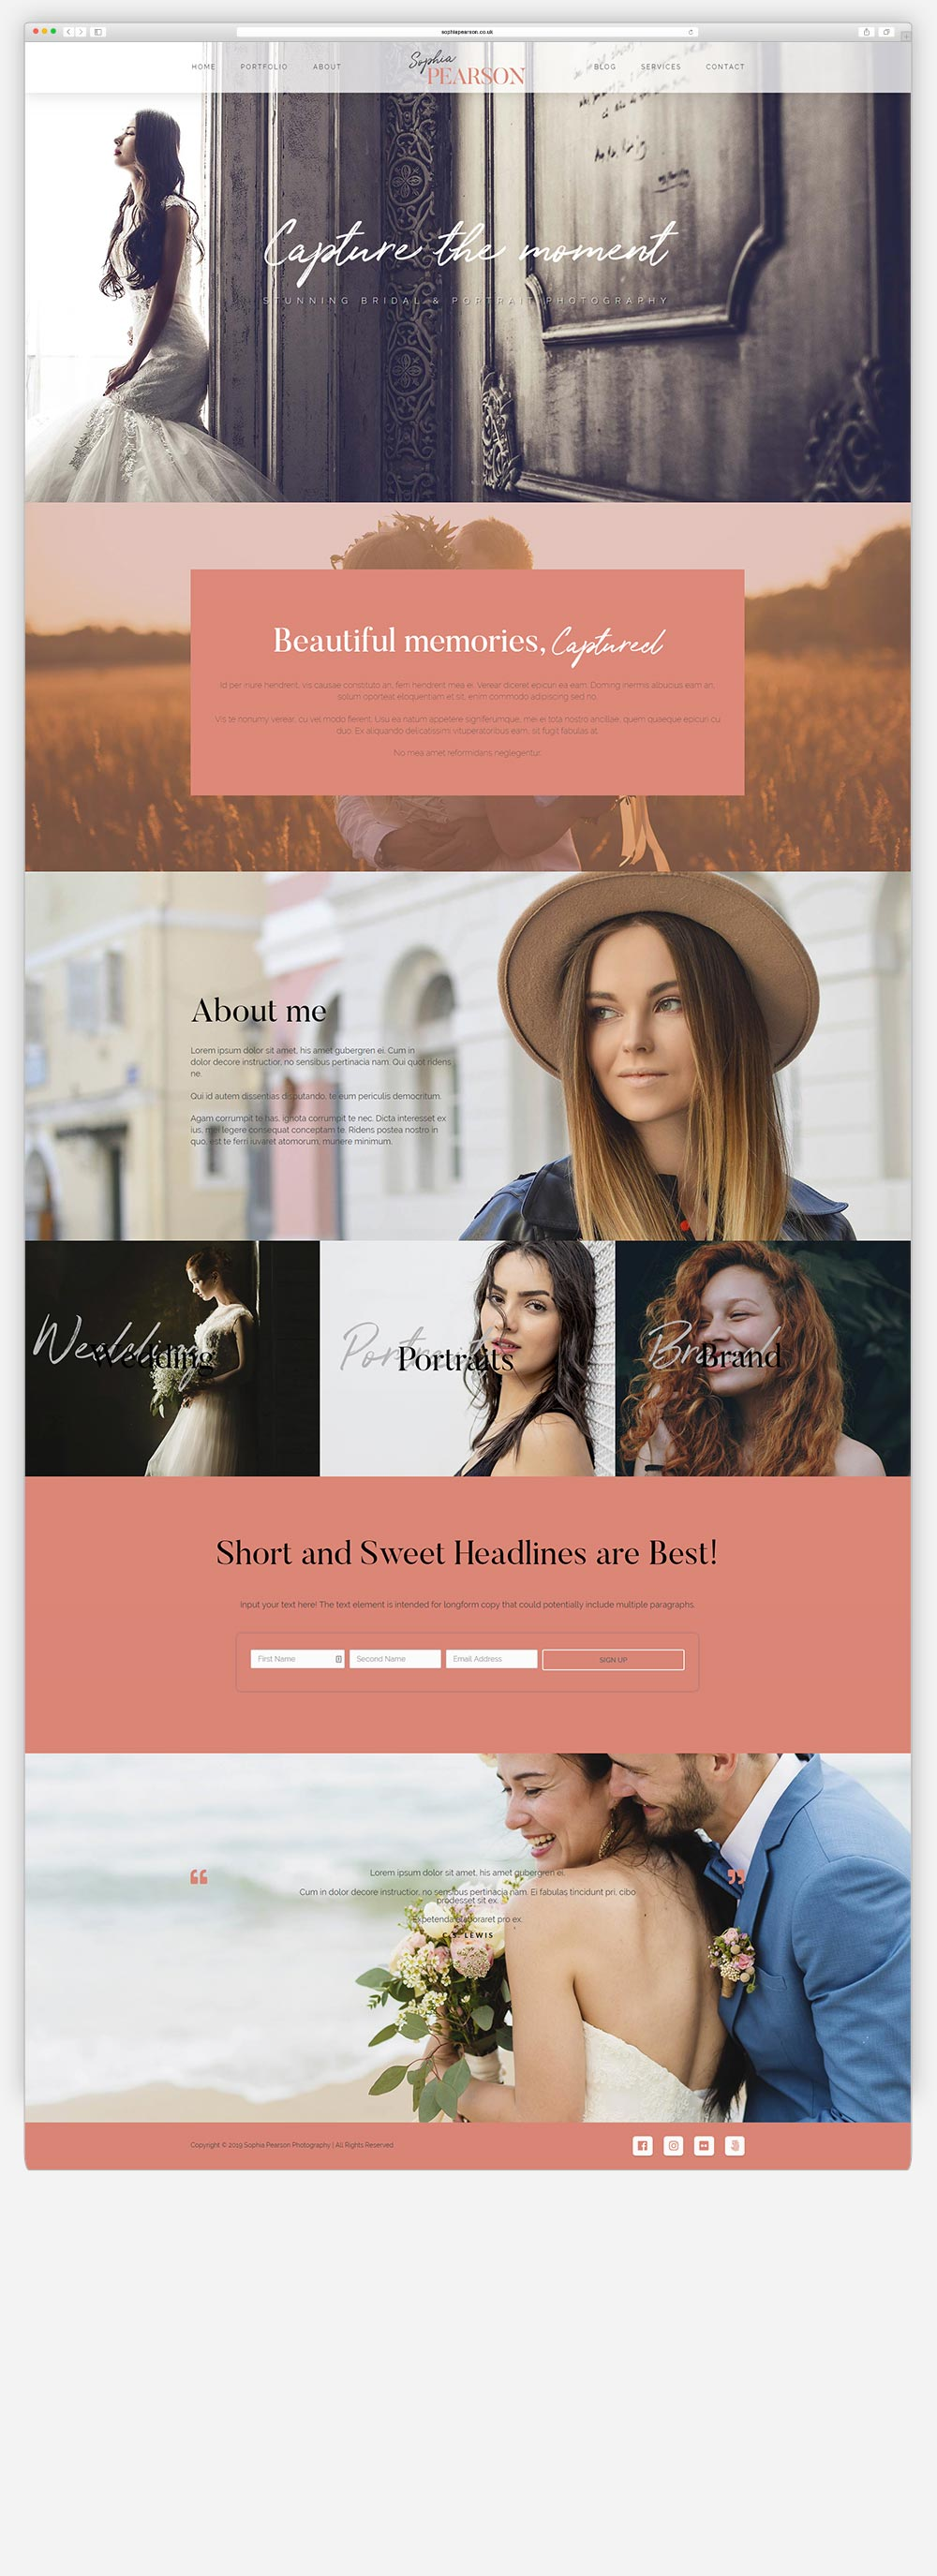 Wordpress Photography Site3 Mockup